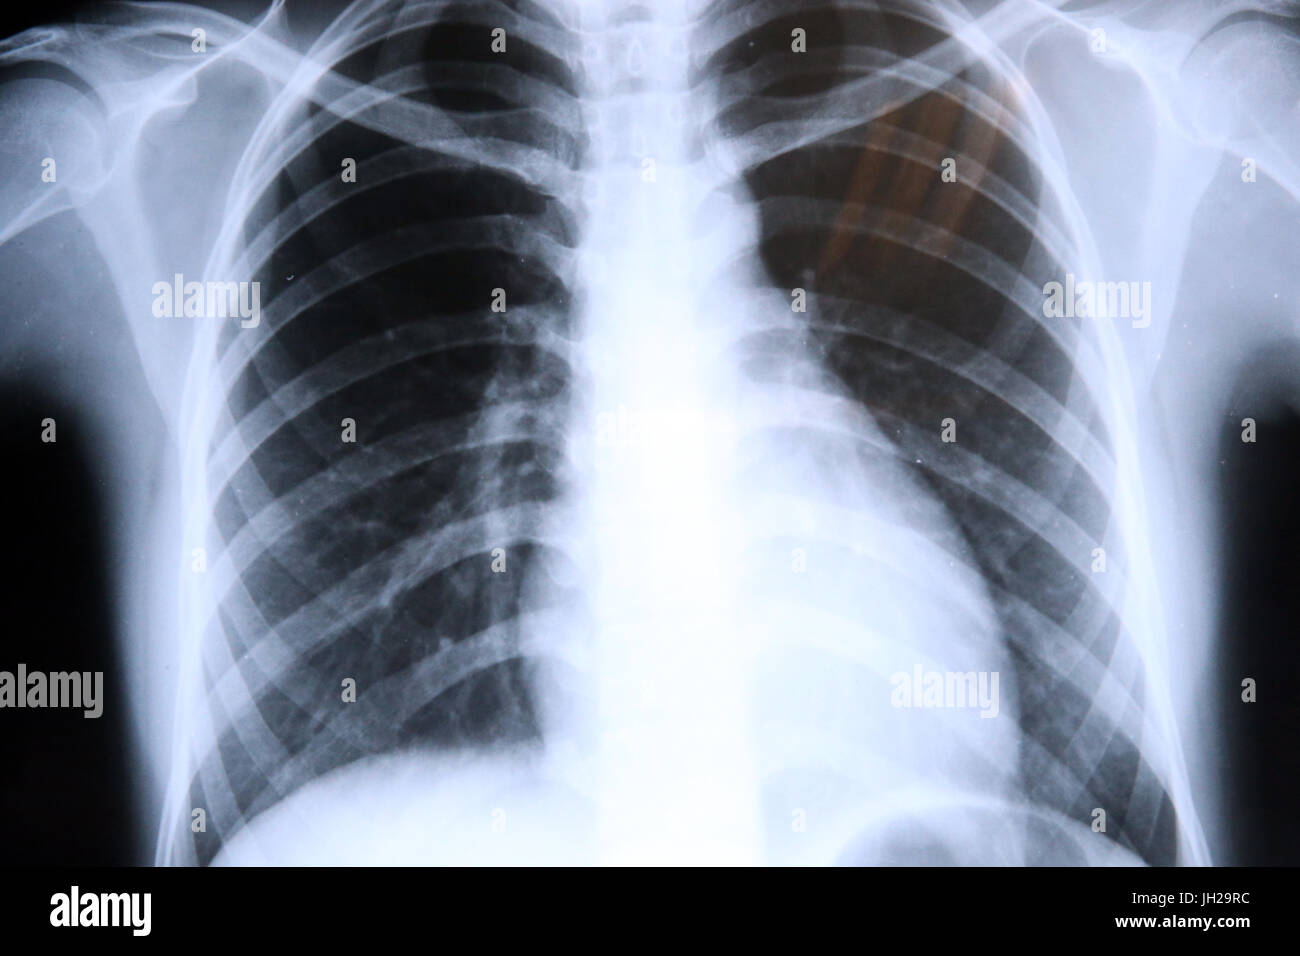 Lungs Radiography. X-rays.  Ho Chi Minh City. Vietnam. - Stock Image